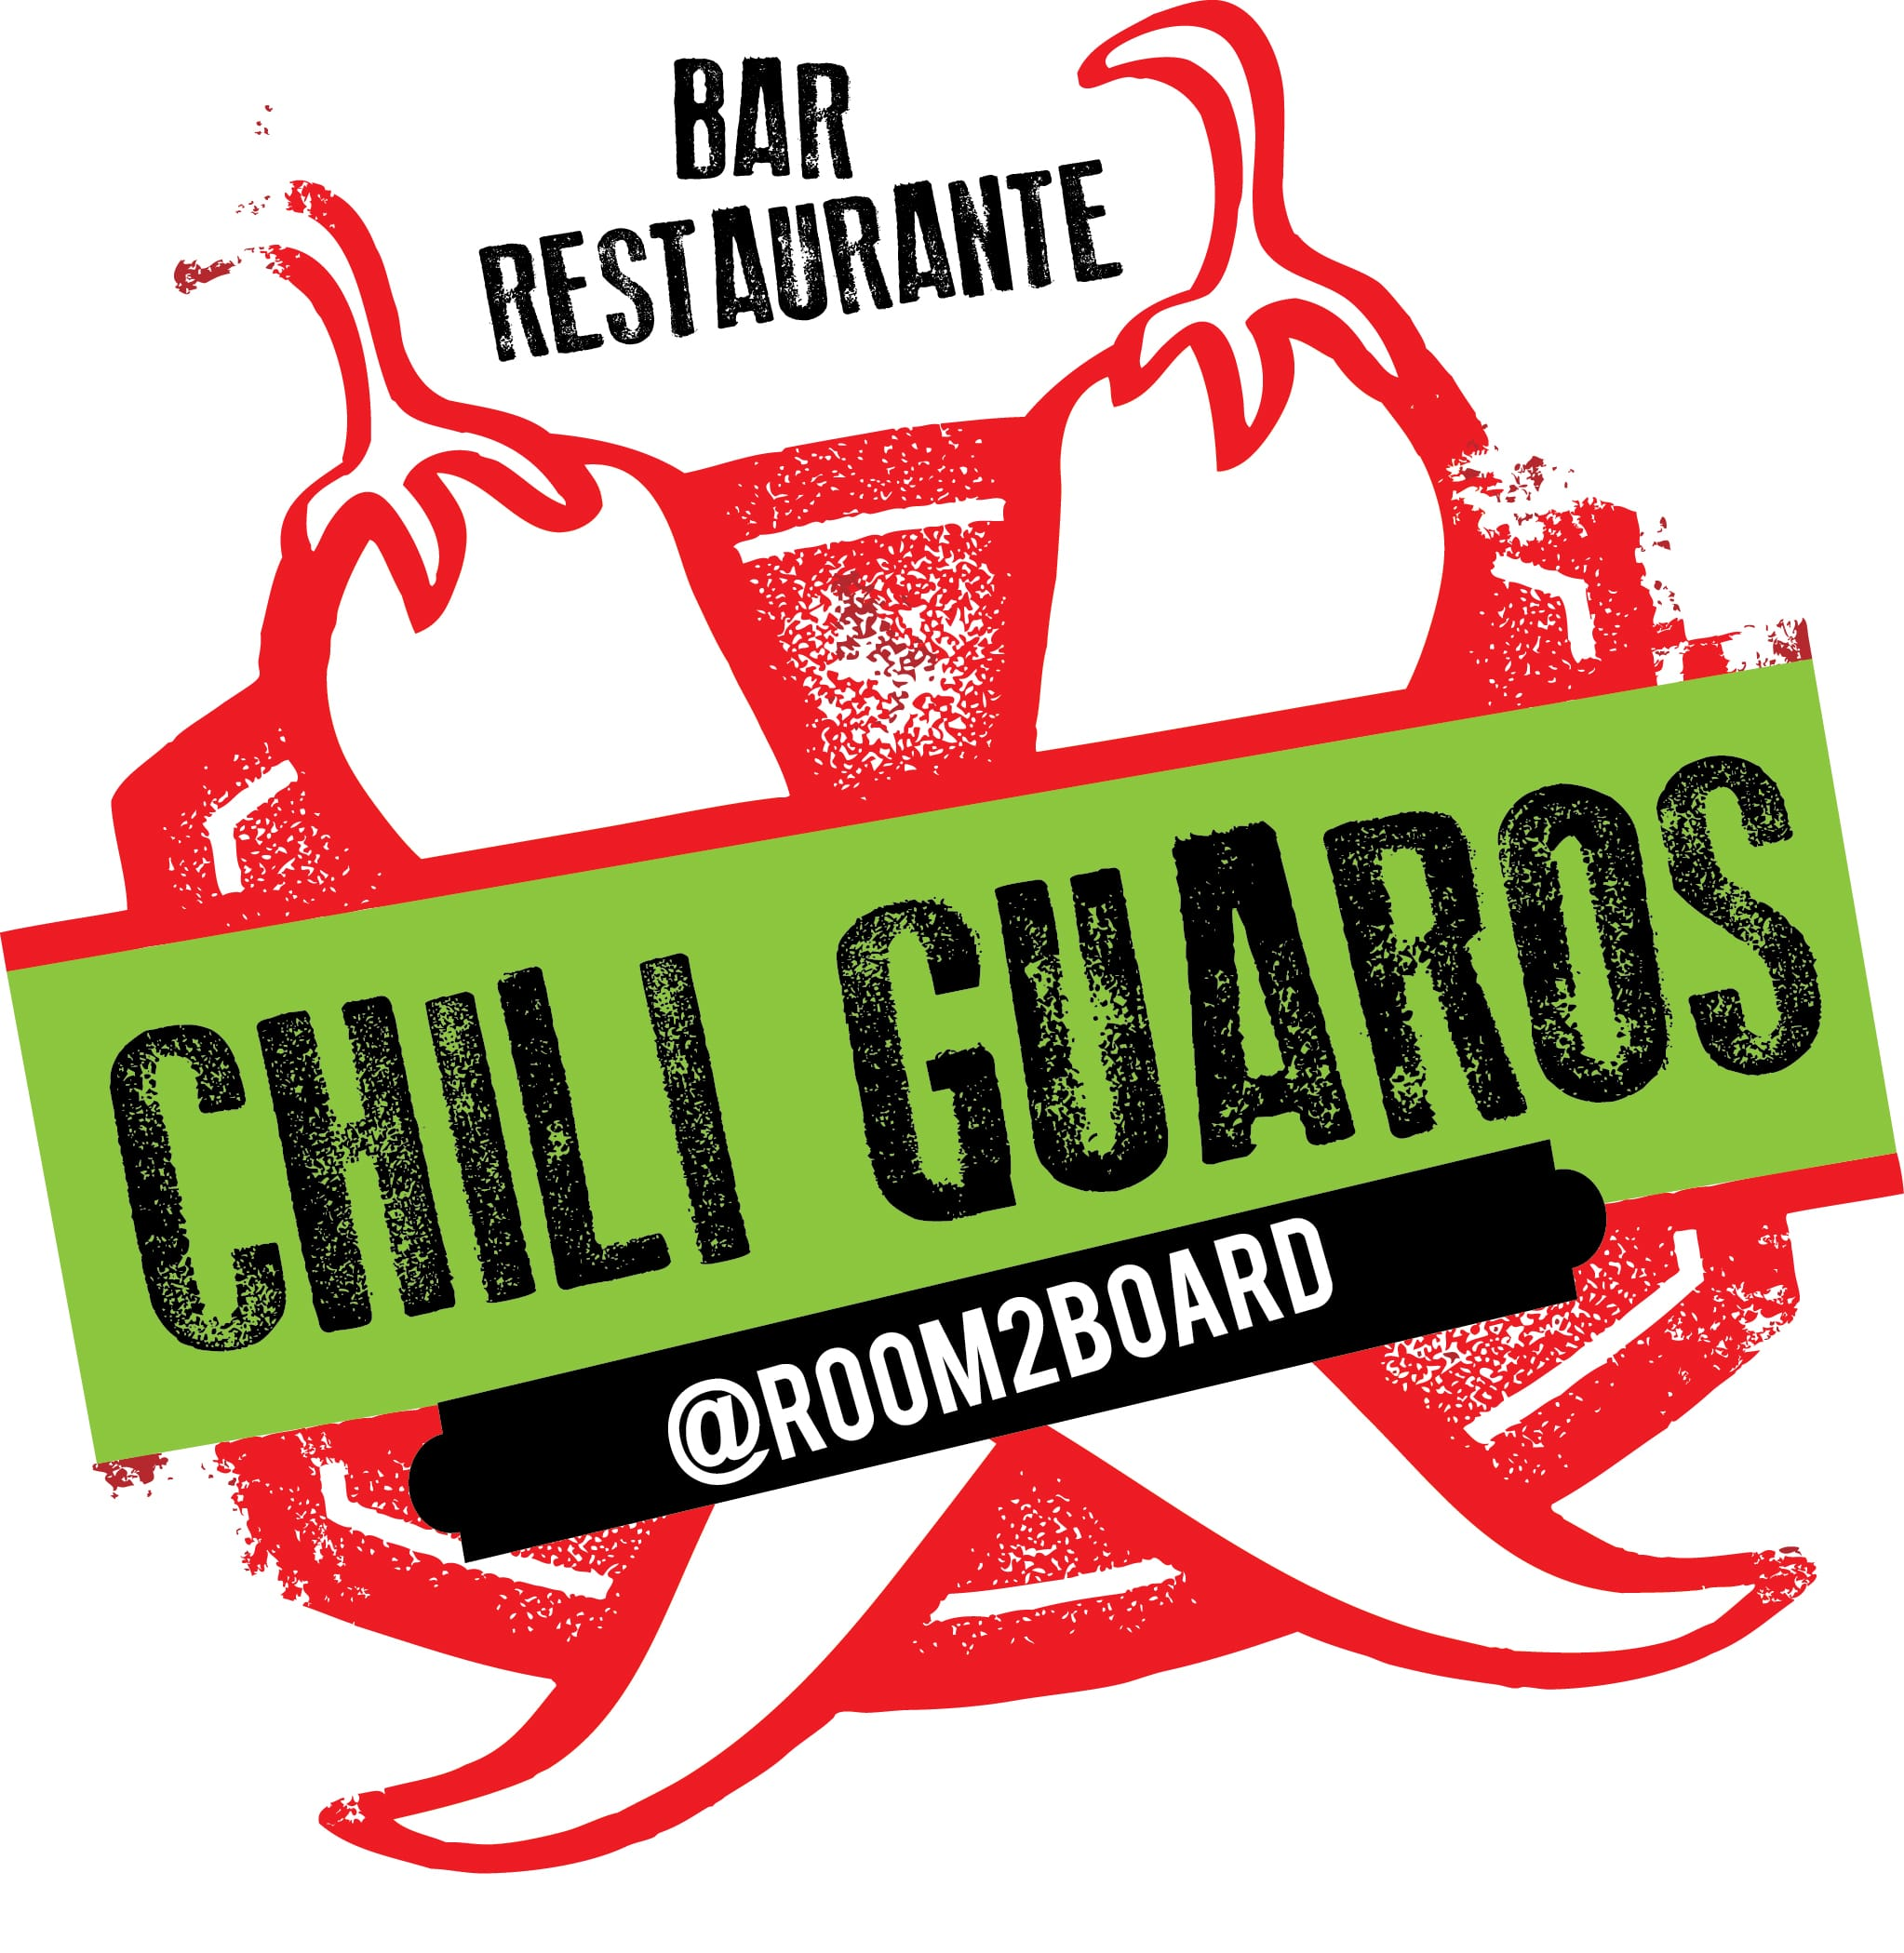 CHILIGUARO, restaurant at Room2Board